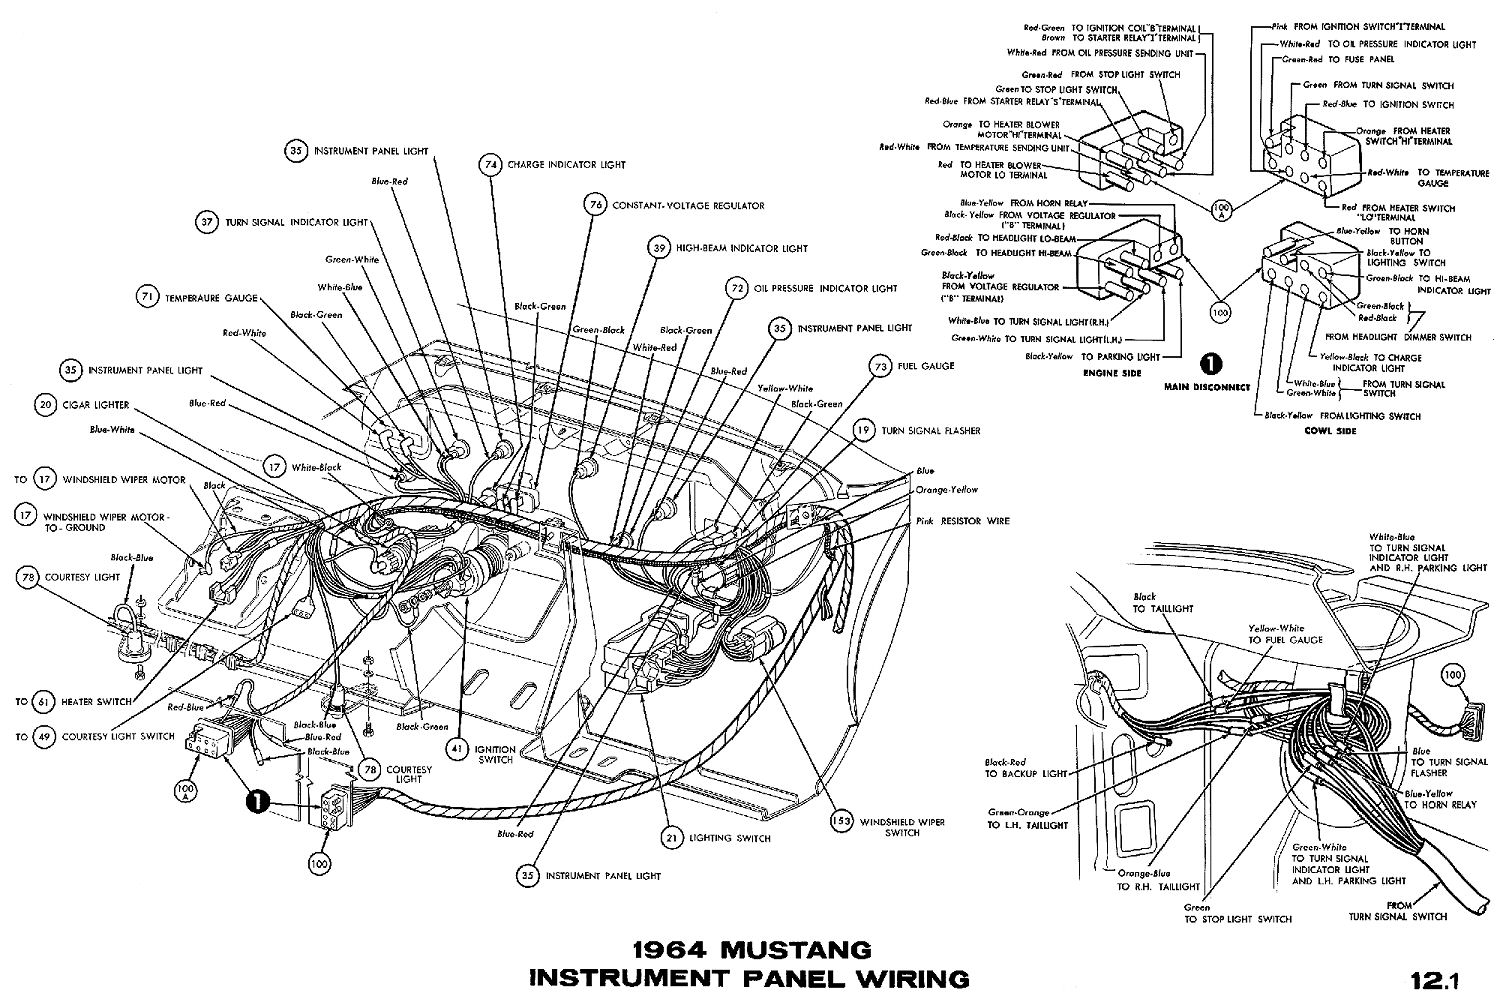 1964 mustang wiring diagrams average joe restoration instrument cluster connections